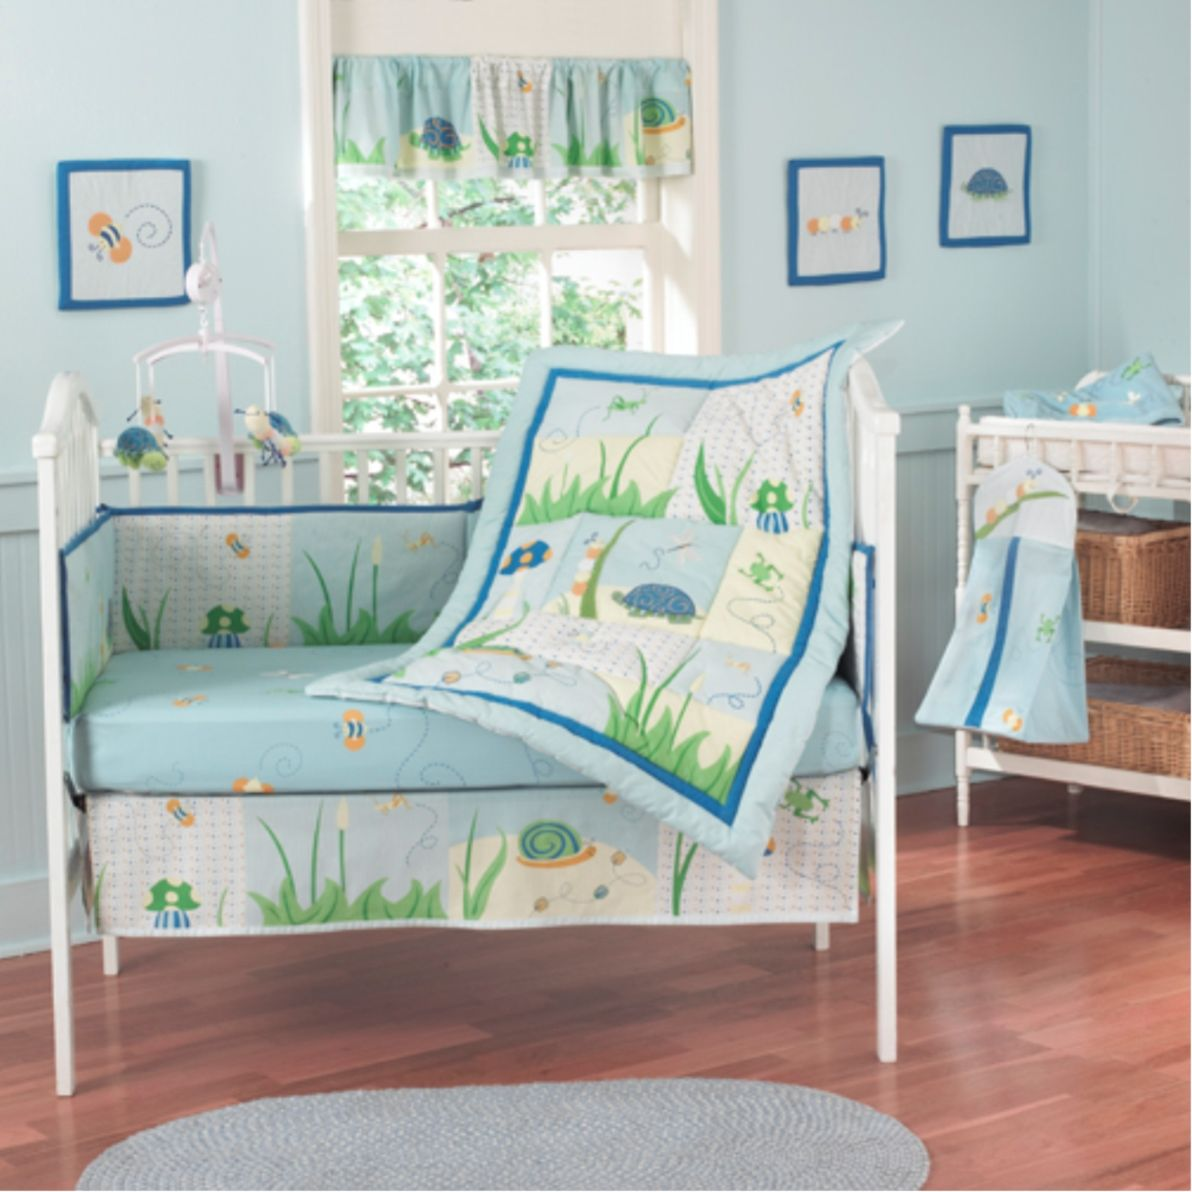 28 Baby Boy Bedroom Sets Bedroom Gallery For Gt Baby Boy Monkey Bedrooms Toddler Bedroom